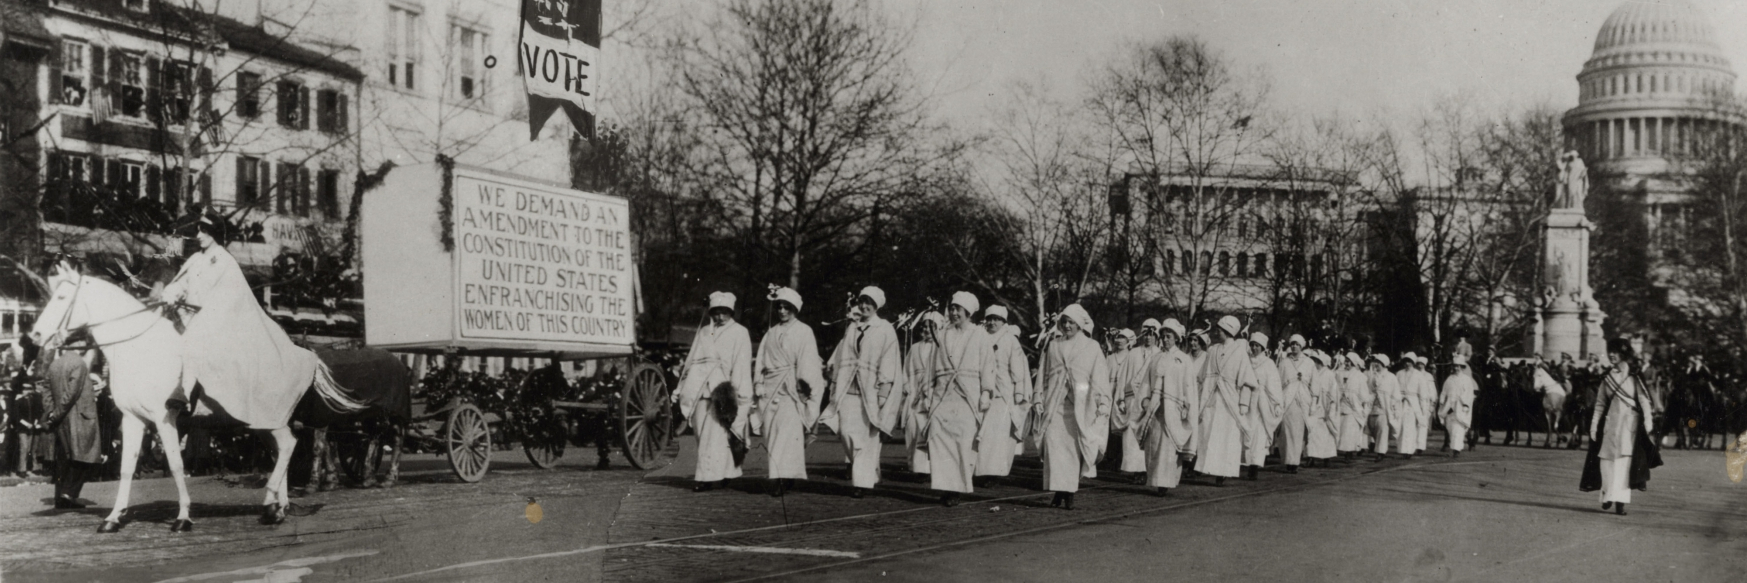 suffragettes marching in washington